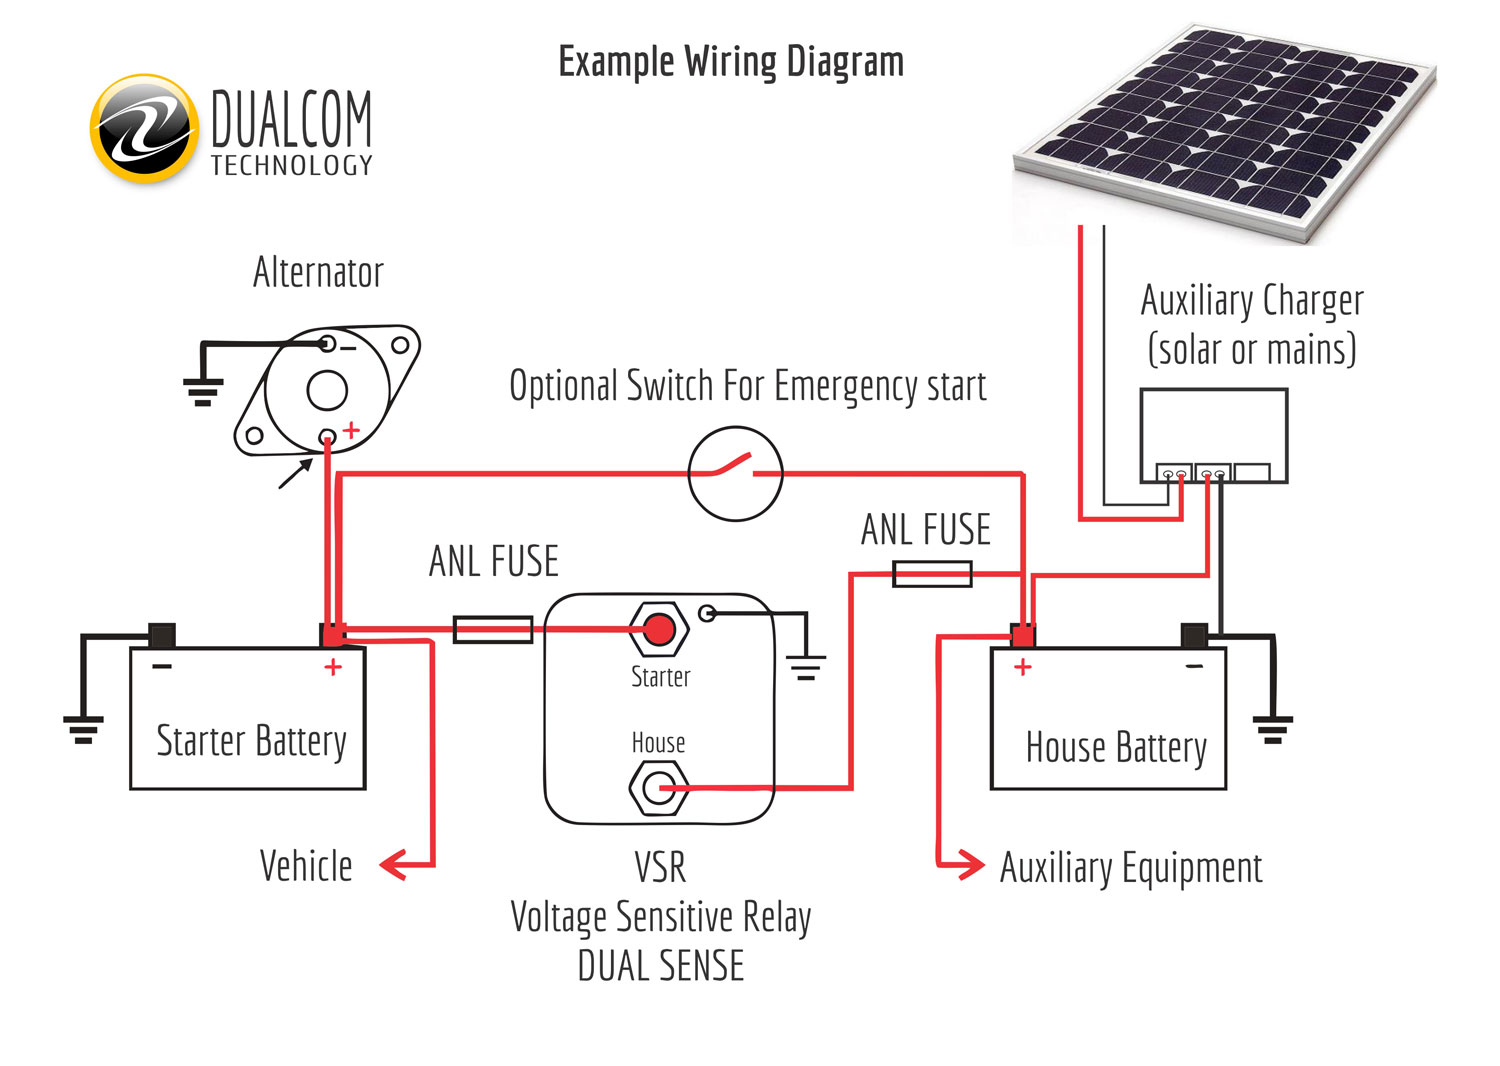 wiring diagram VSR DUAL how a vsr (voltage sensitive relay) works energy unlimited vsr wiring diagram at nearapp.co